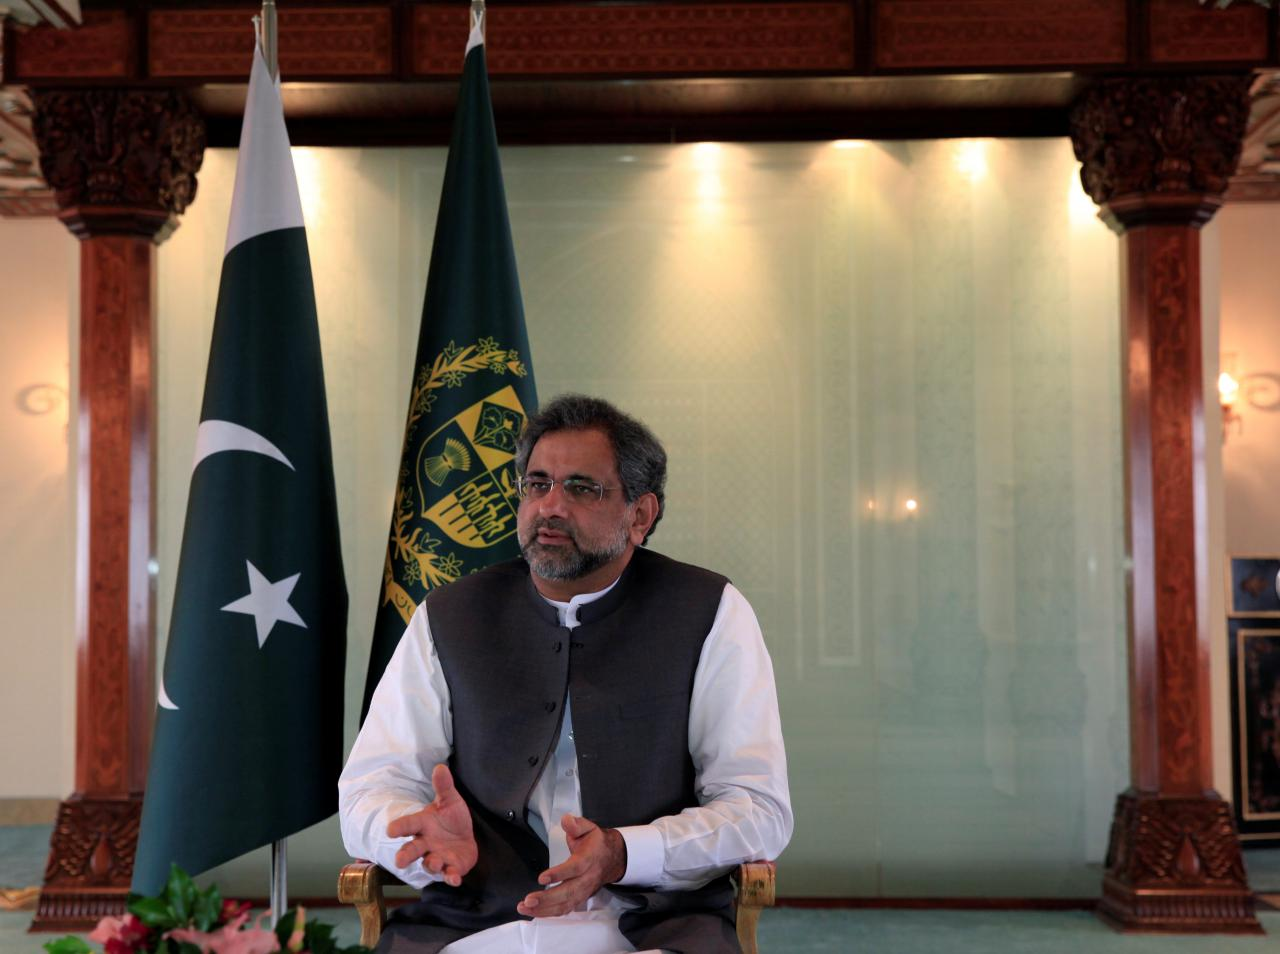 pakistans-prime-minister-abbasi-speaks-with-a-reuters-correspondent-during-an-interview-at-his-office-in-islamabad-4-2-2-2-2